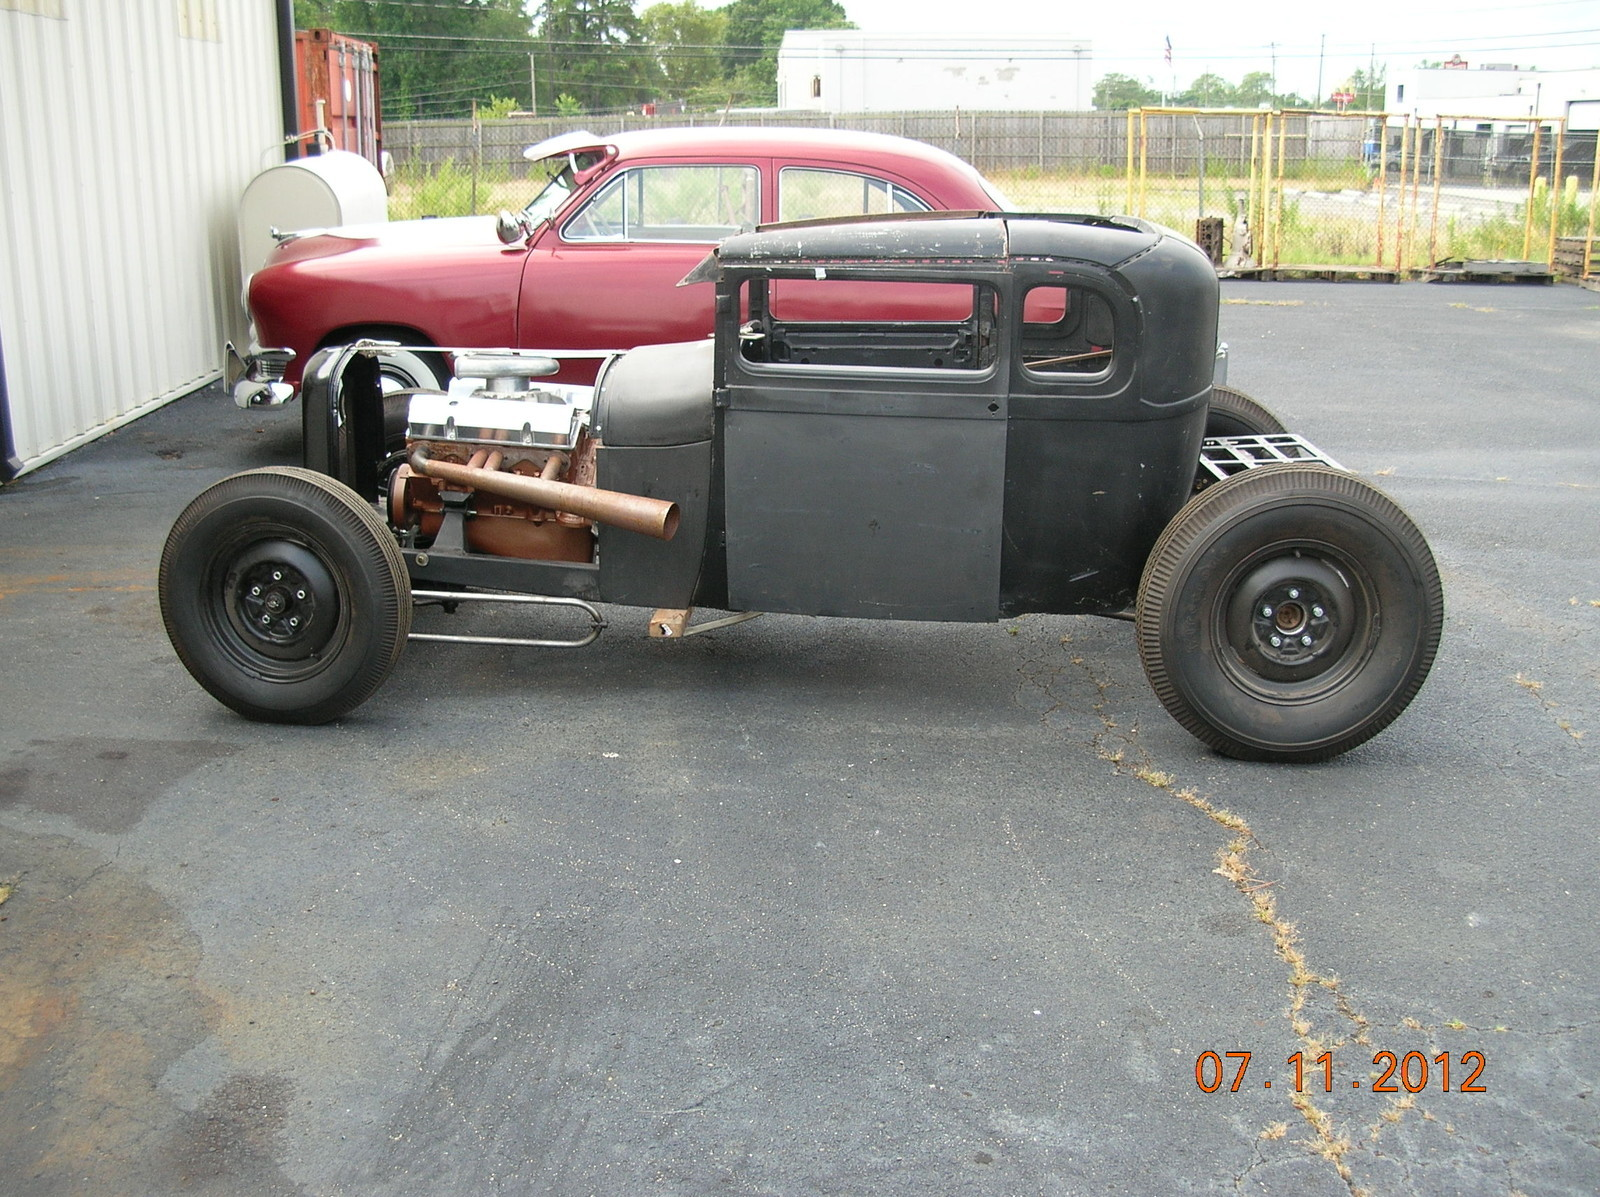 VAPHEAD: Little hot rod project for sale